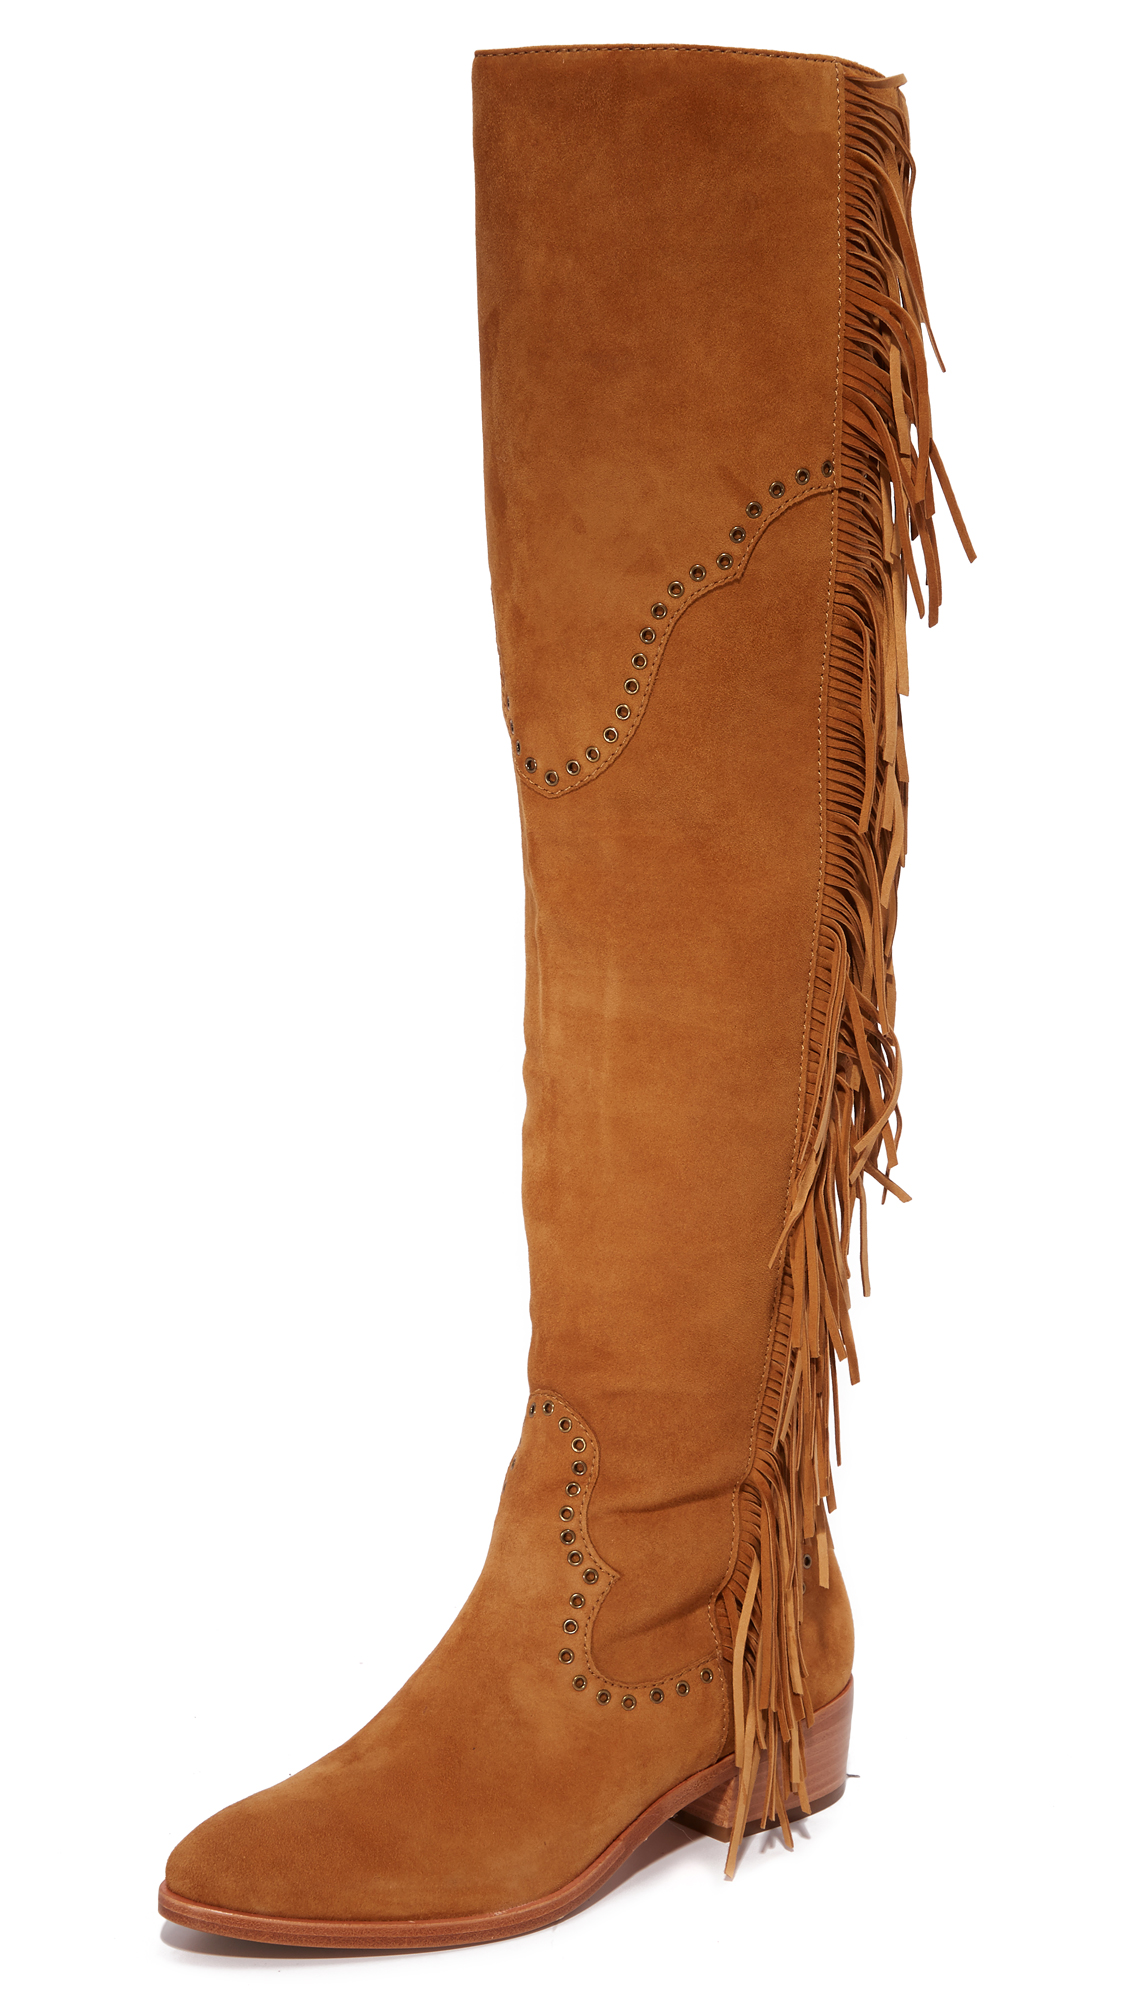 Frye Ray Fringe Over The Knee Boots - Camel